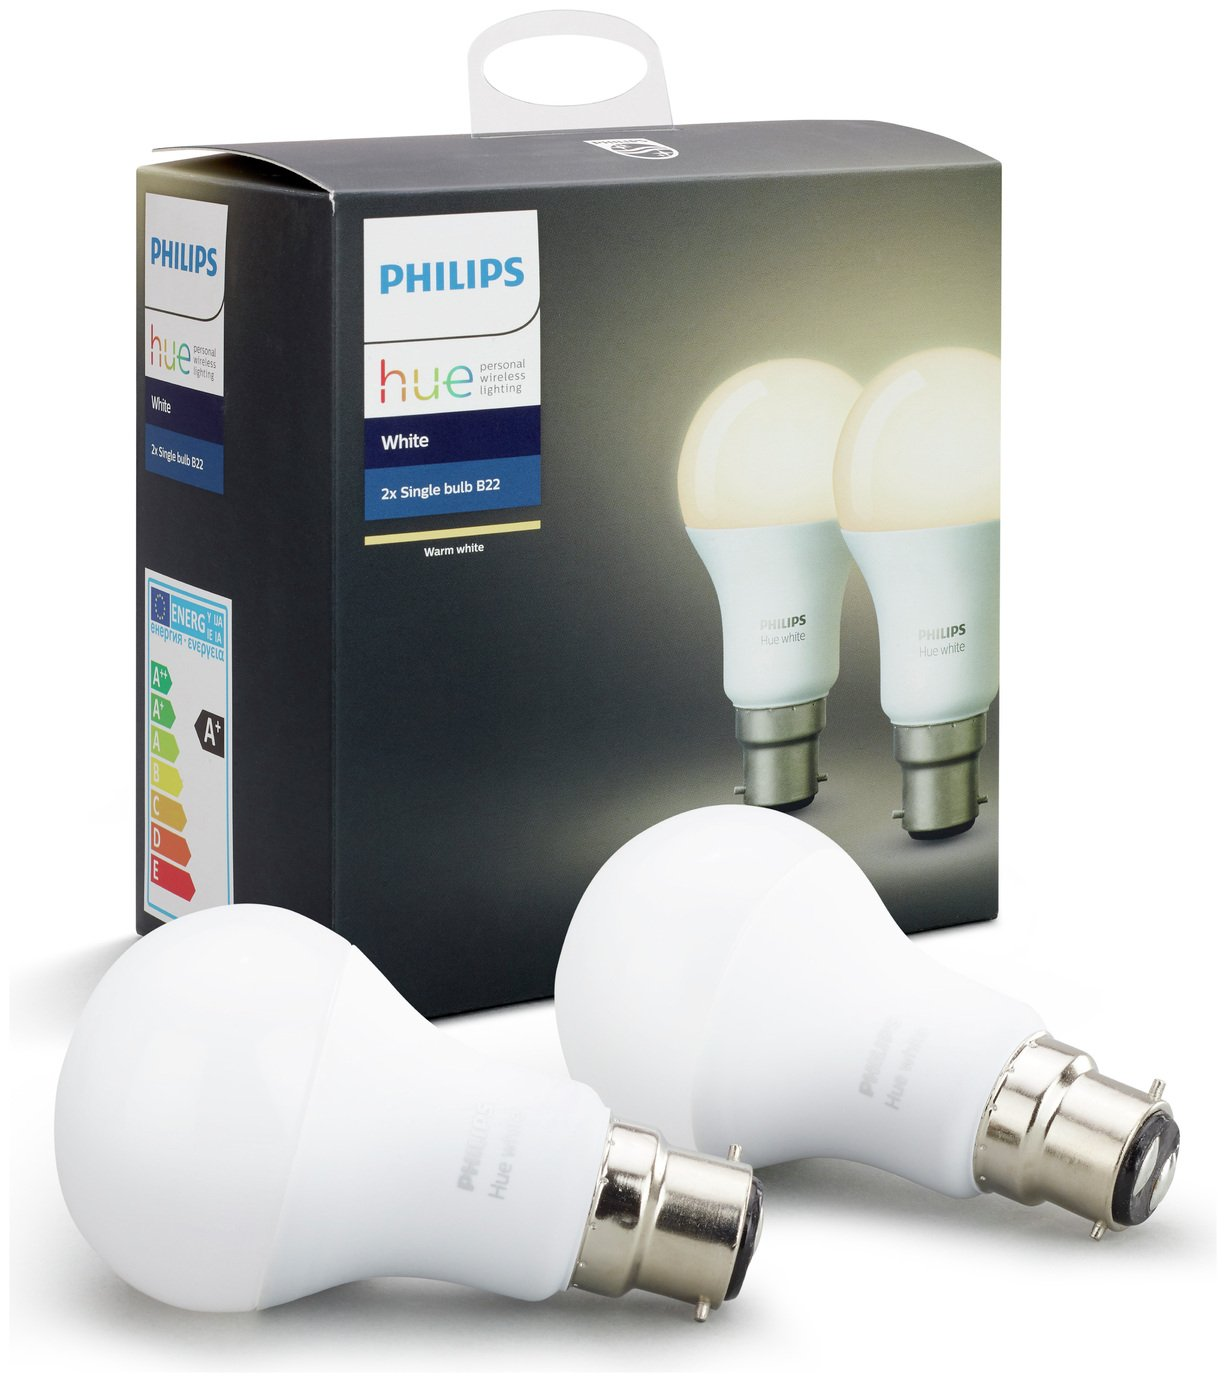 Philips Hue White B22 Bulbs - Twin Pack from Philips